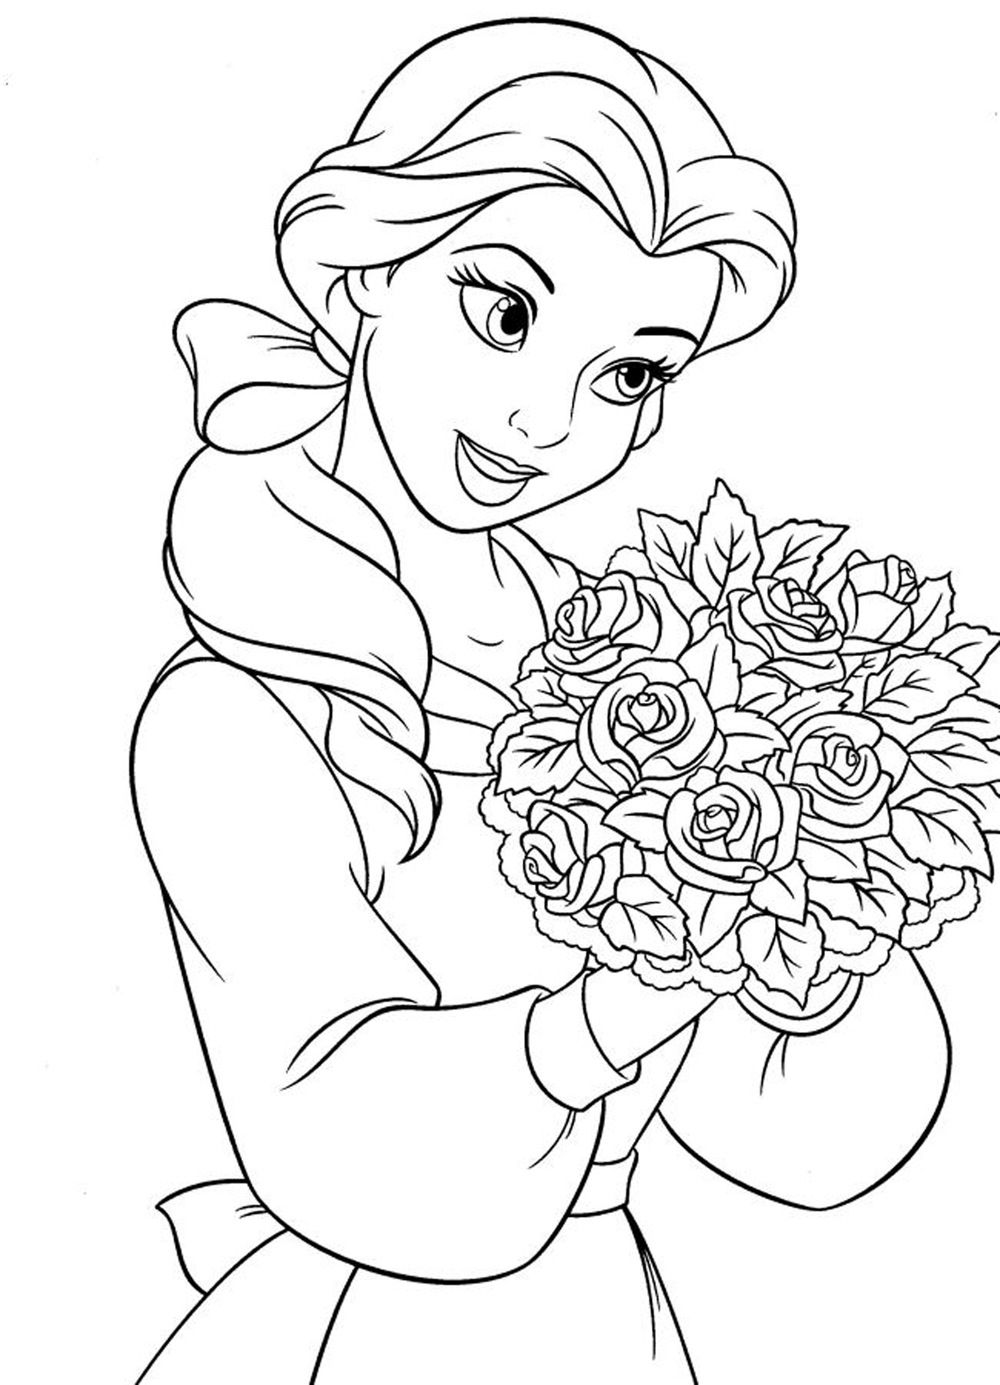 princess coloring pages for girls - Free Large Images | Coloring ...